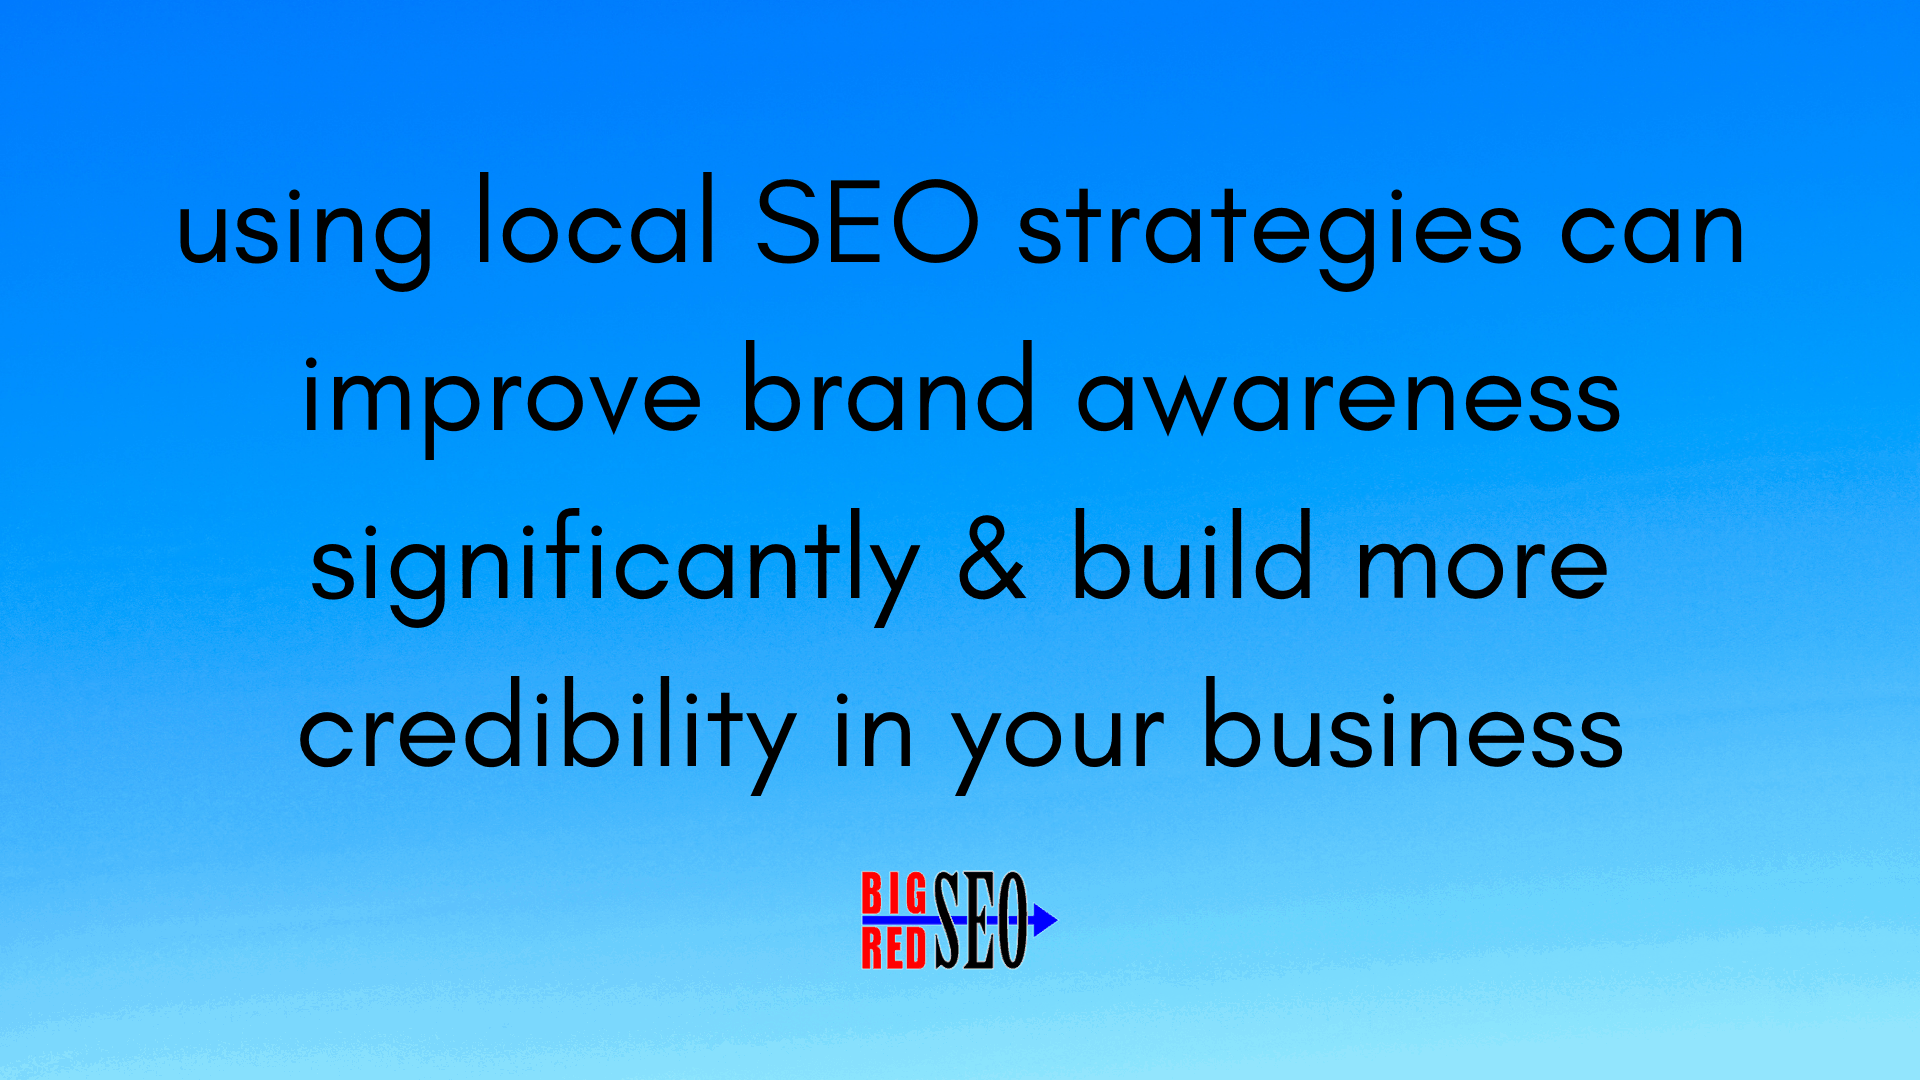 using local SEO strategies can improve brand awareness significantly & build more credibility in your business as a result